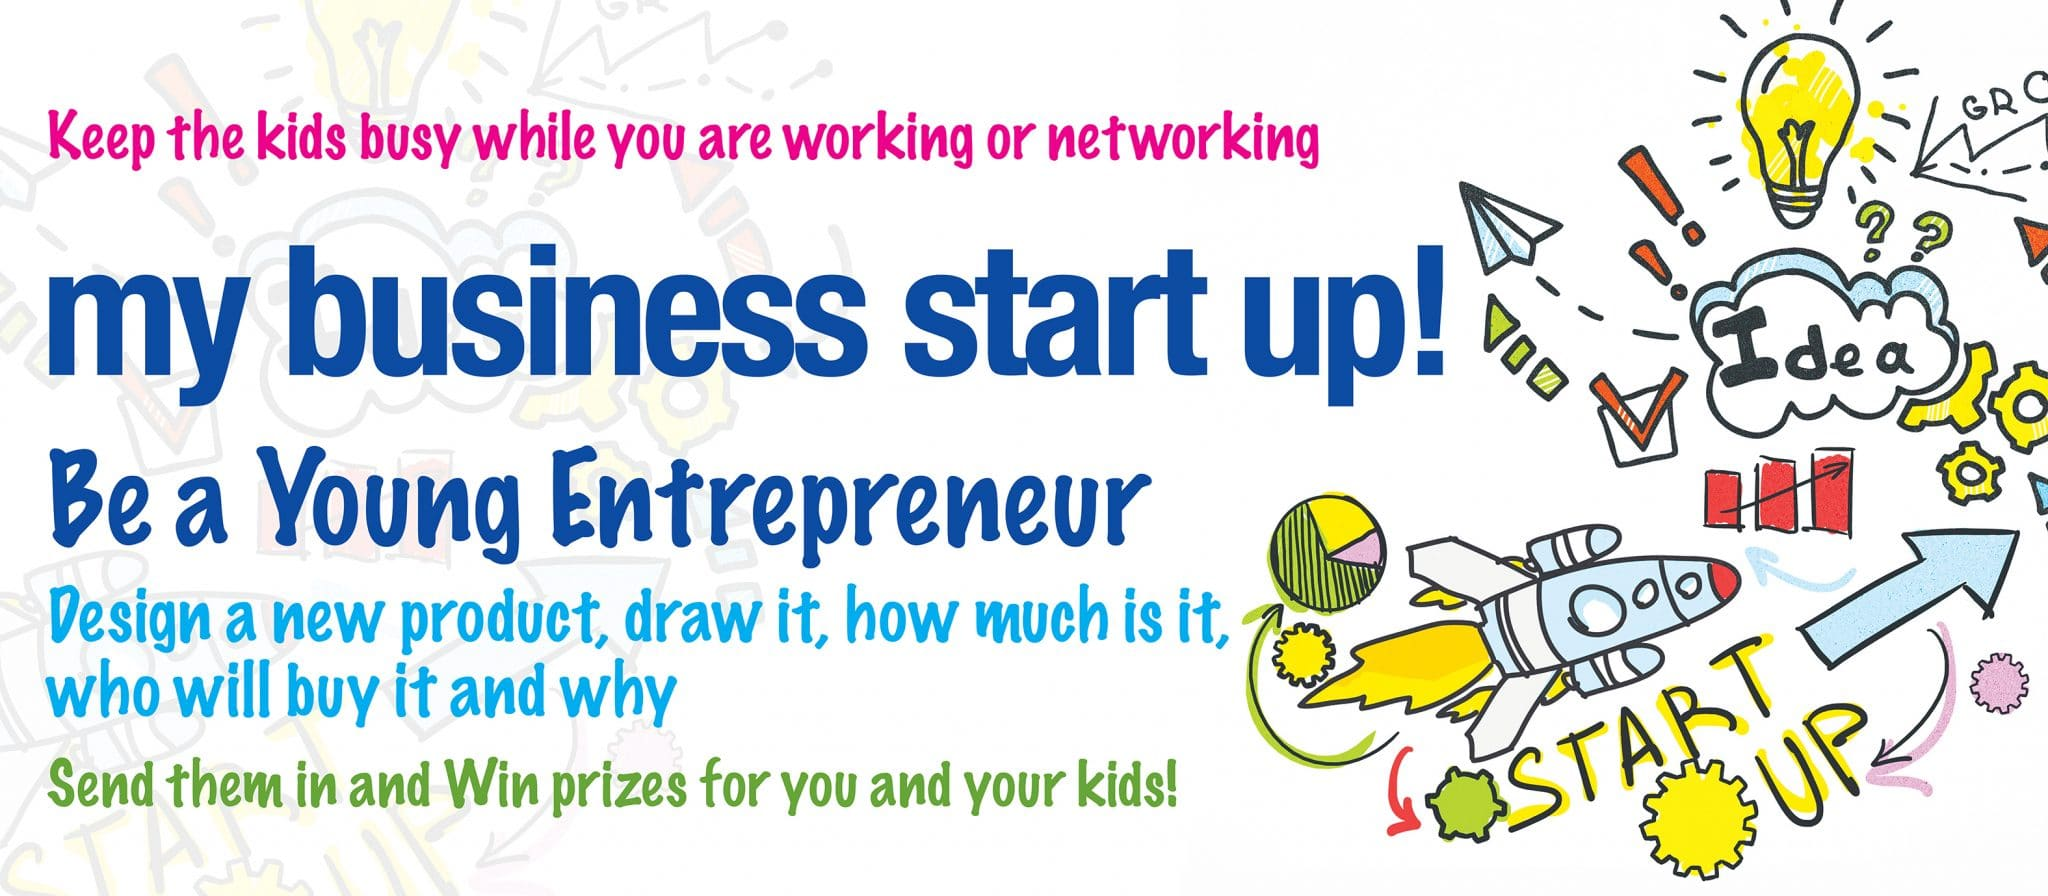 Kids-Business-Start-up-Banner-2020-1-scaled